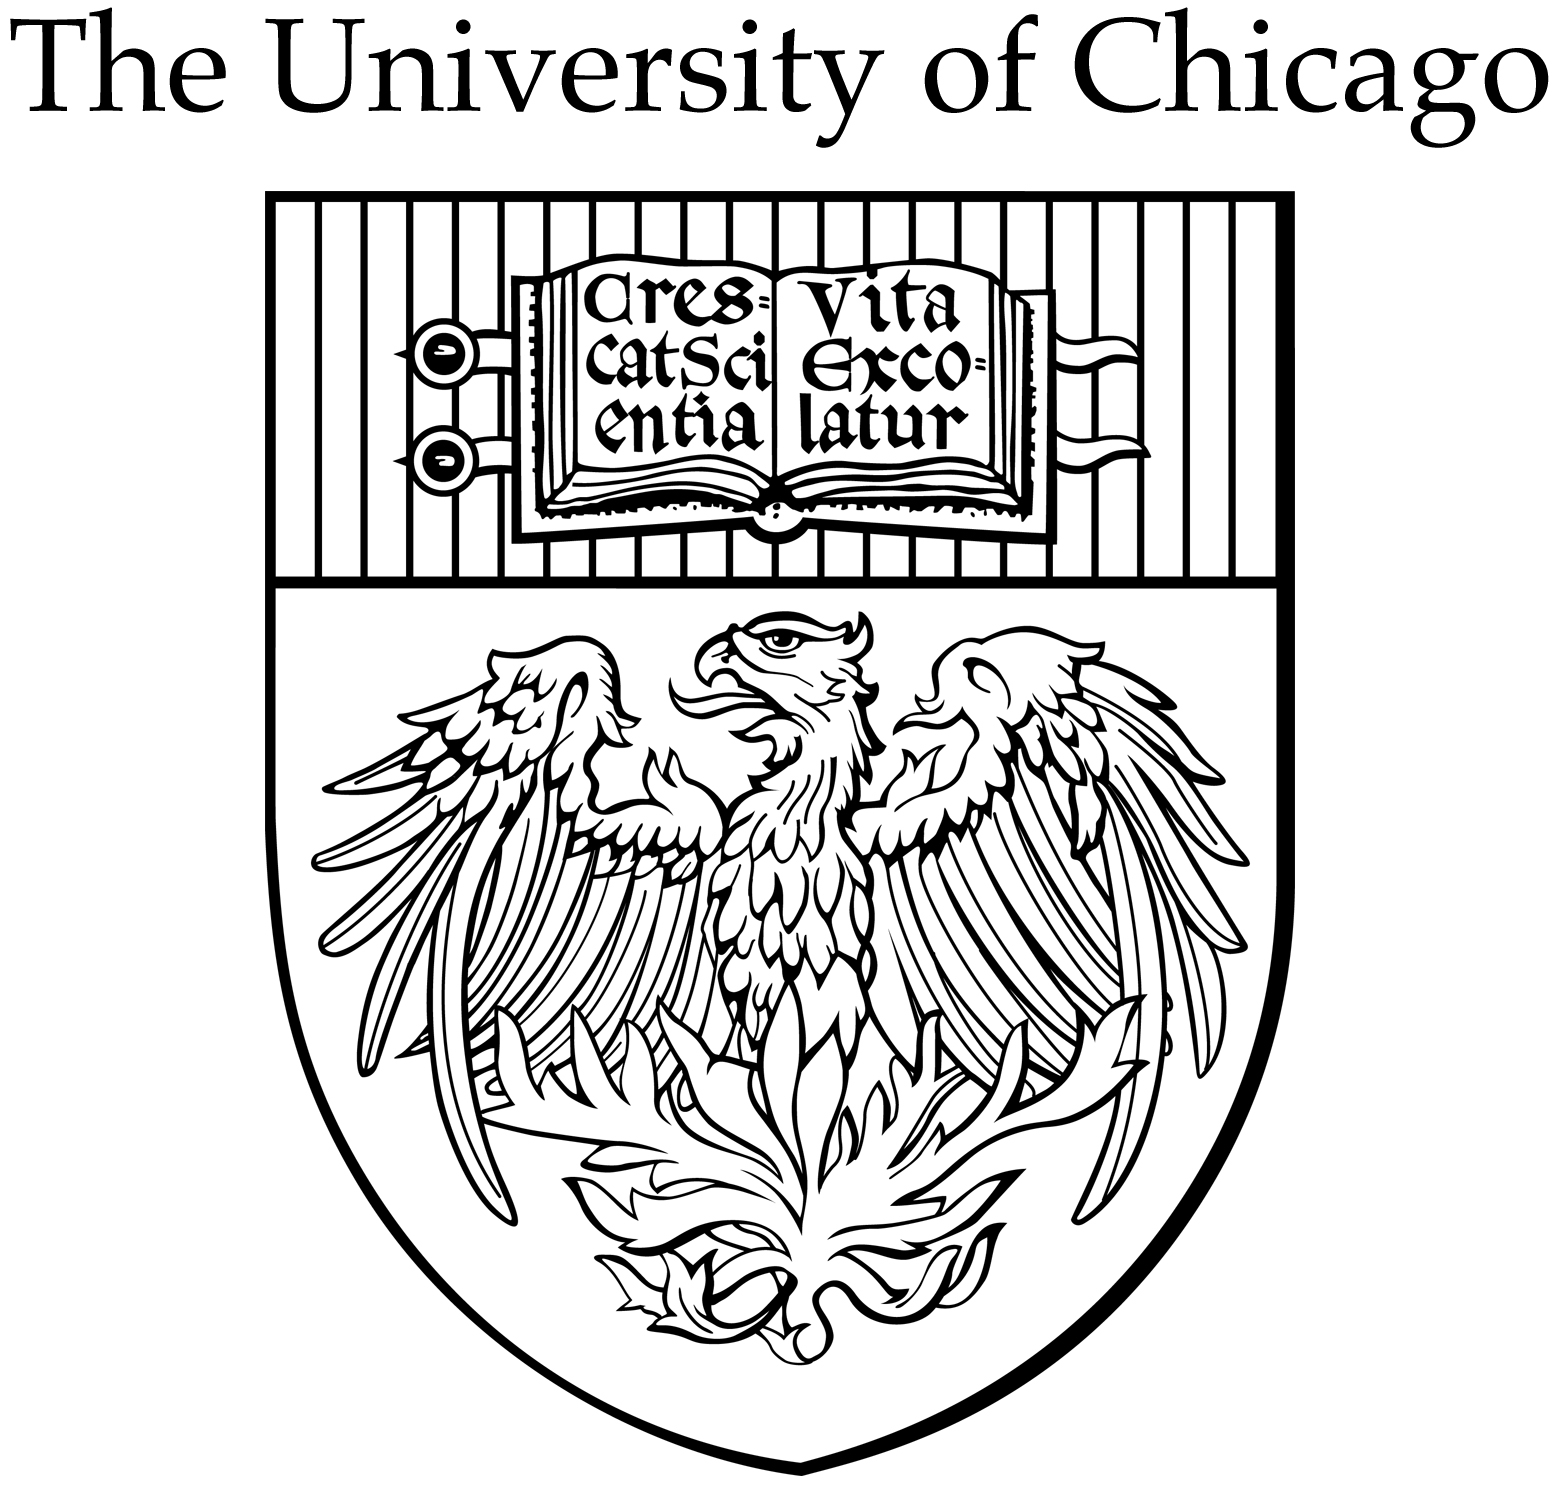 U of Chicago Essays, Essays for U of Chicago, U of Chicago College Admissions Essays